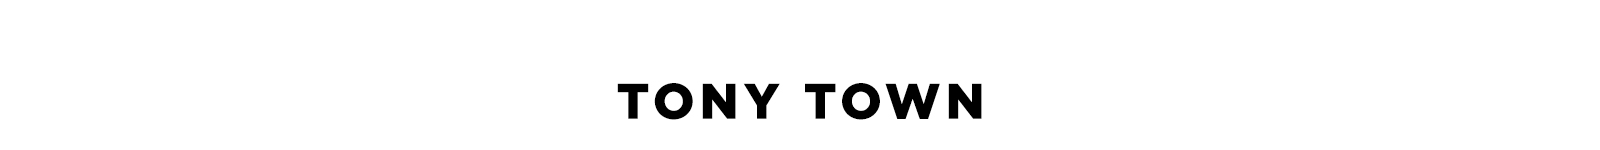 Aug 2018: Tony Moly Flagship Product Title Banner